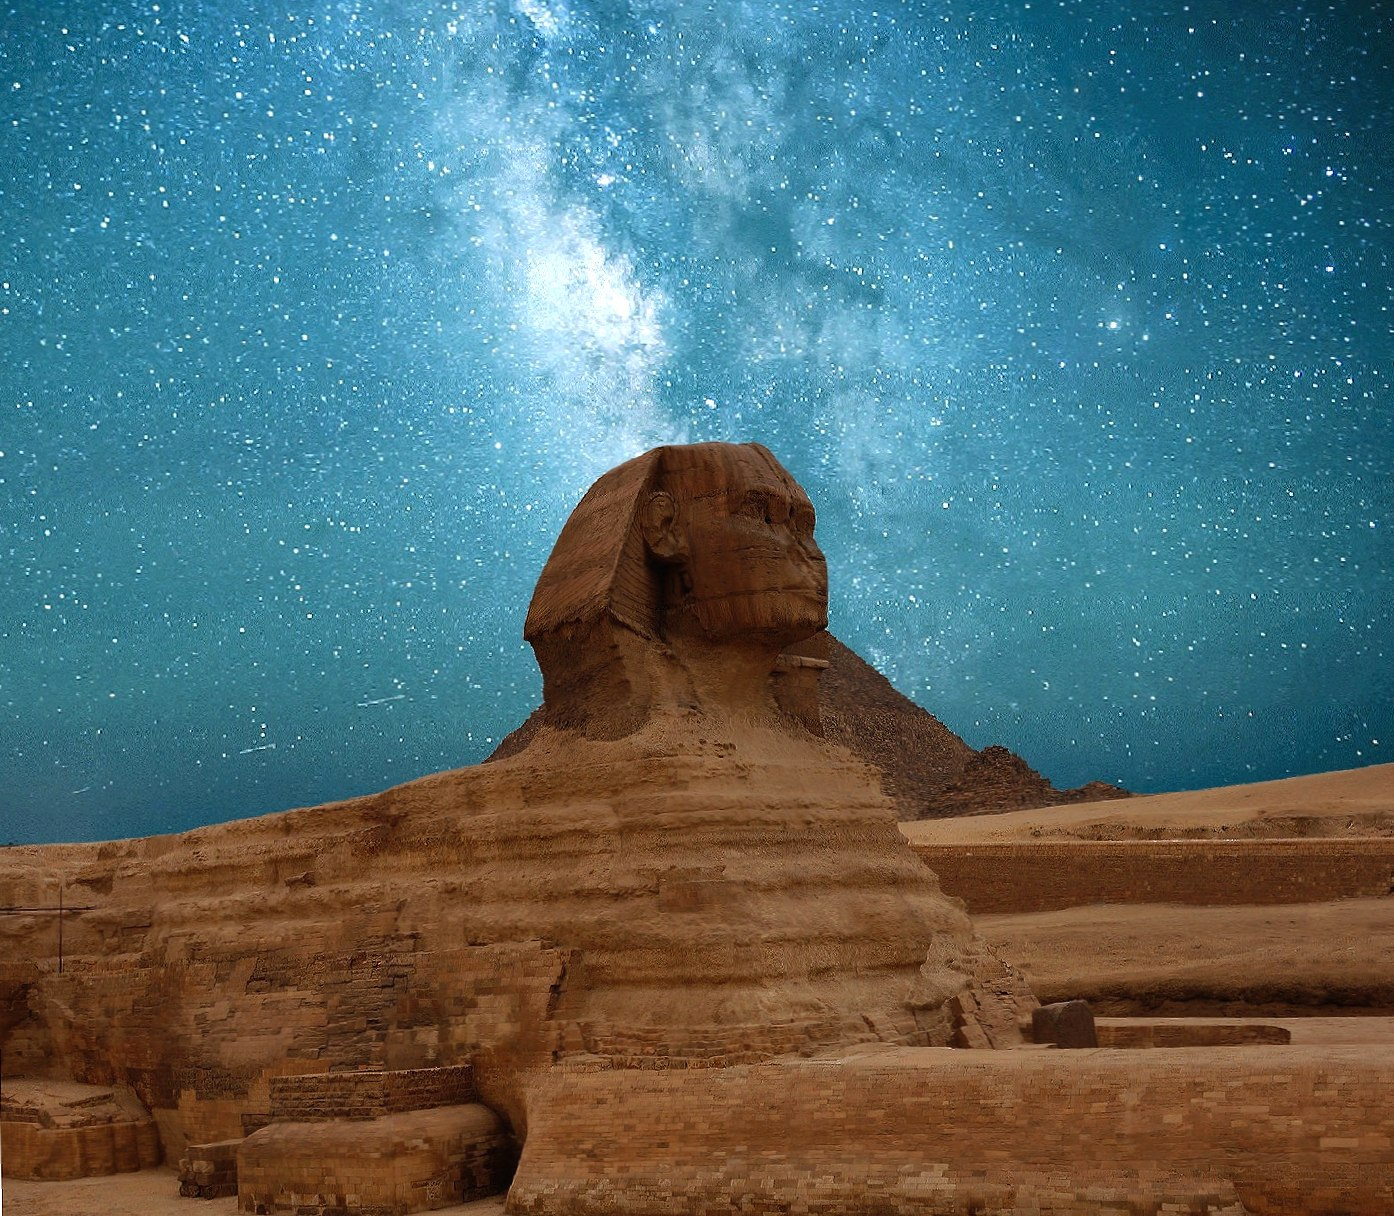 Egypt Evening wallpapers HD quality